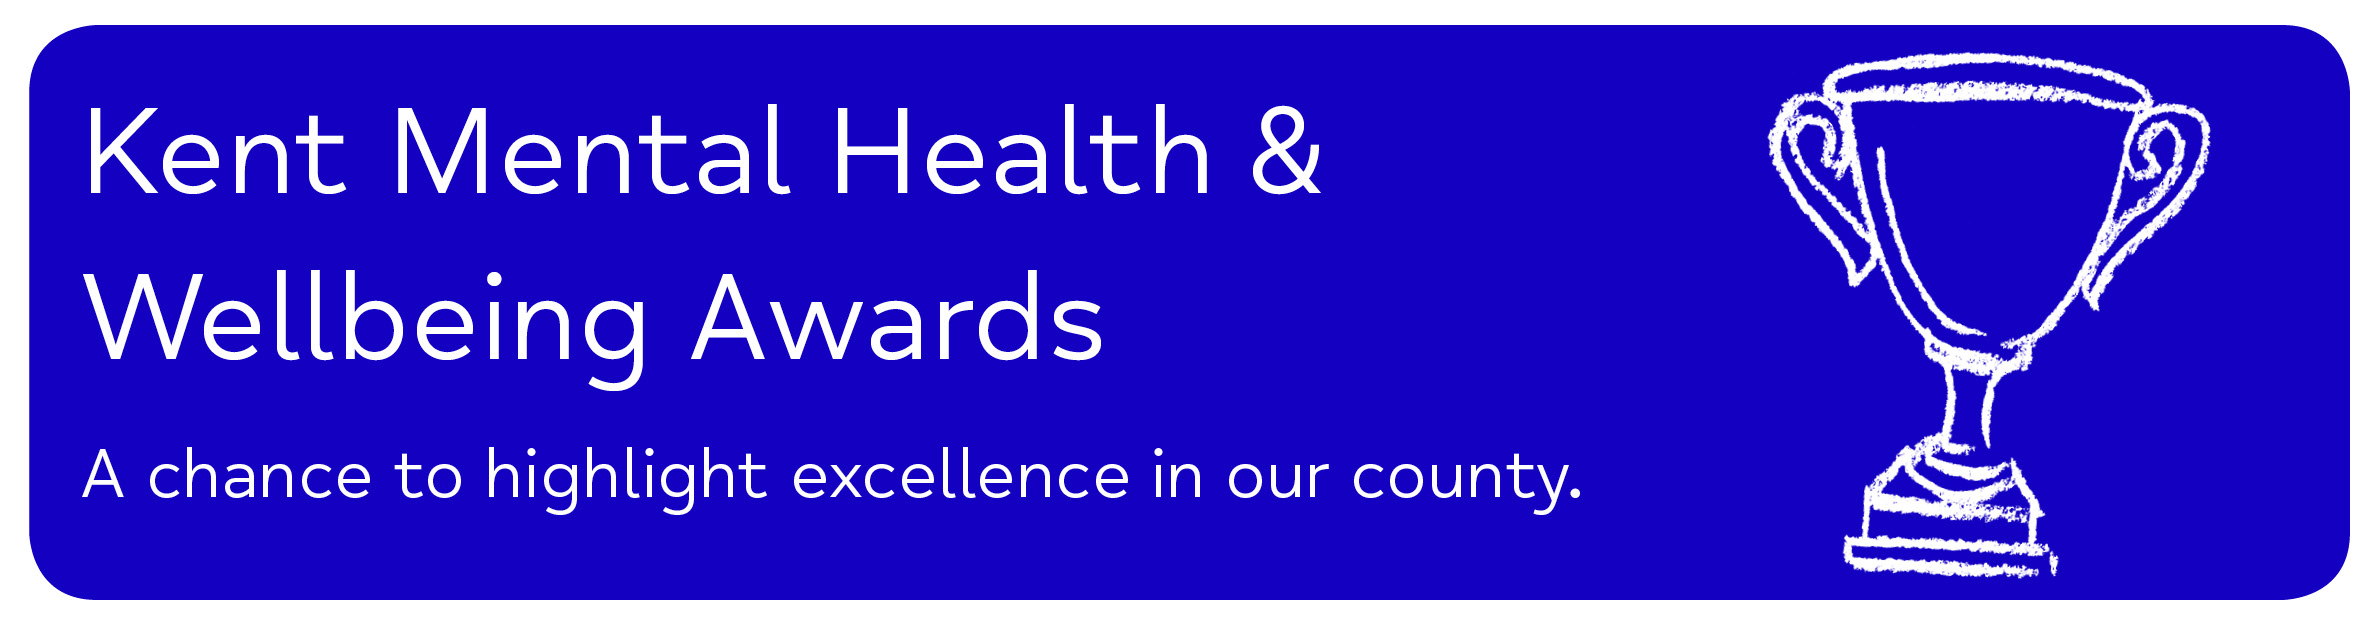 Kent Mental Health & Wellbeing Awards A chance to highlight excellence in our county.